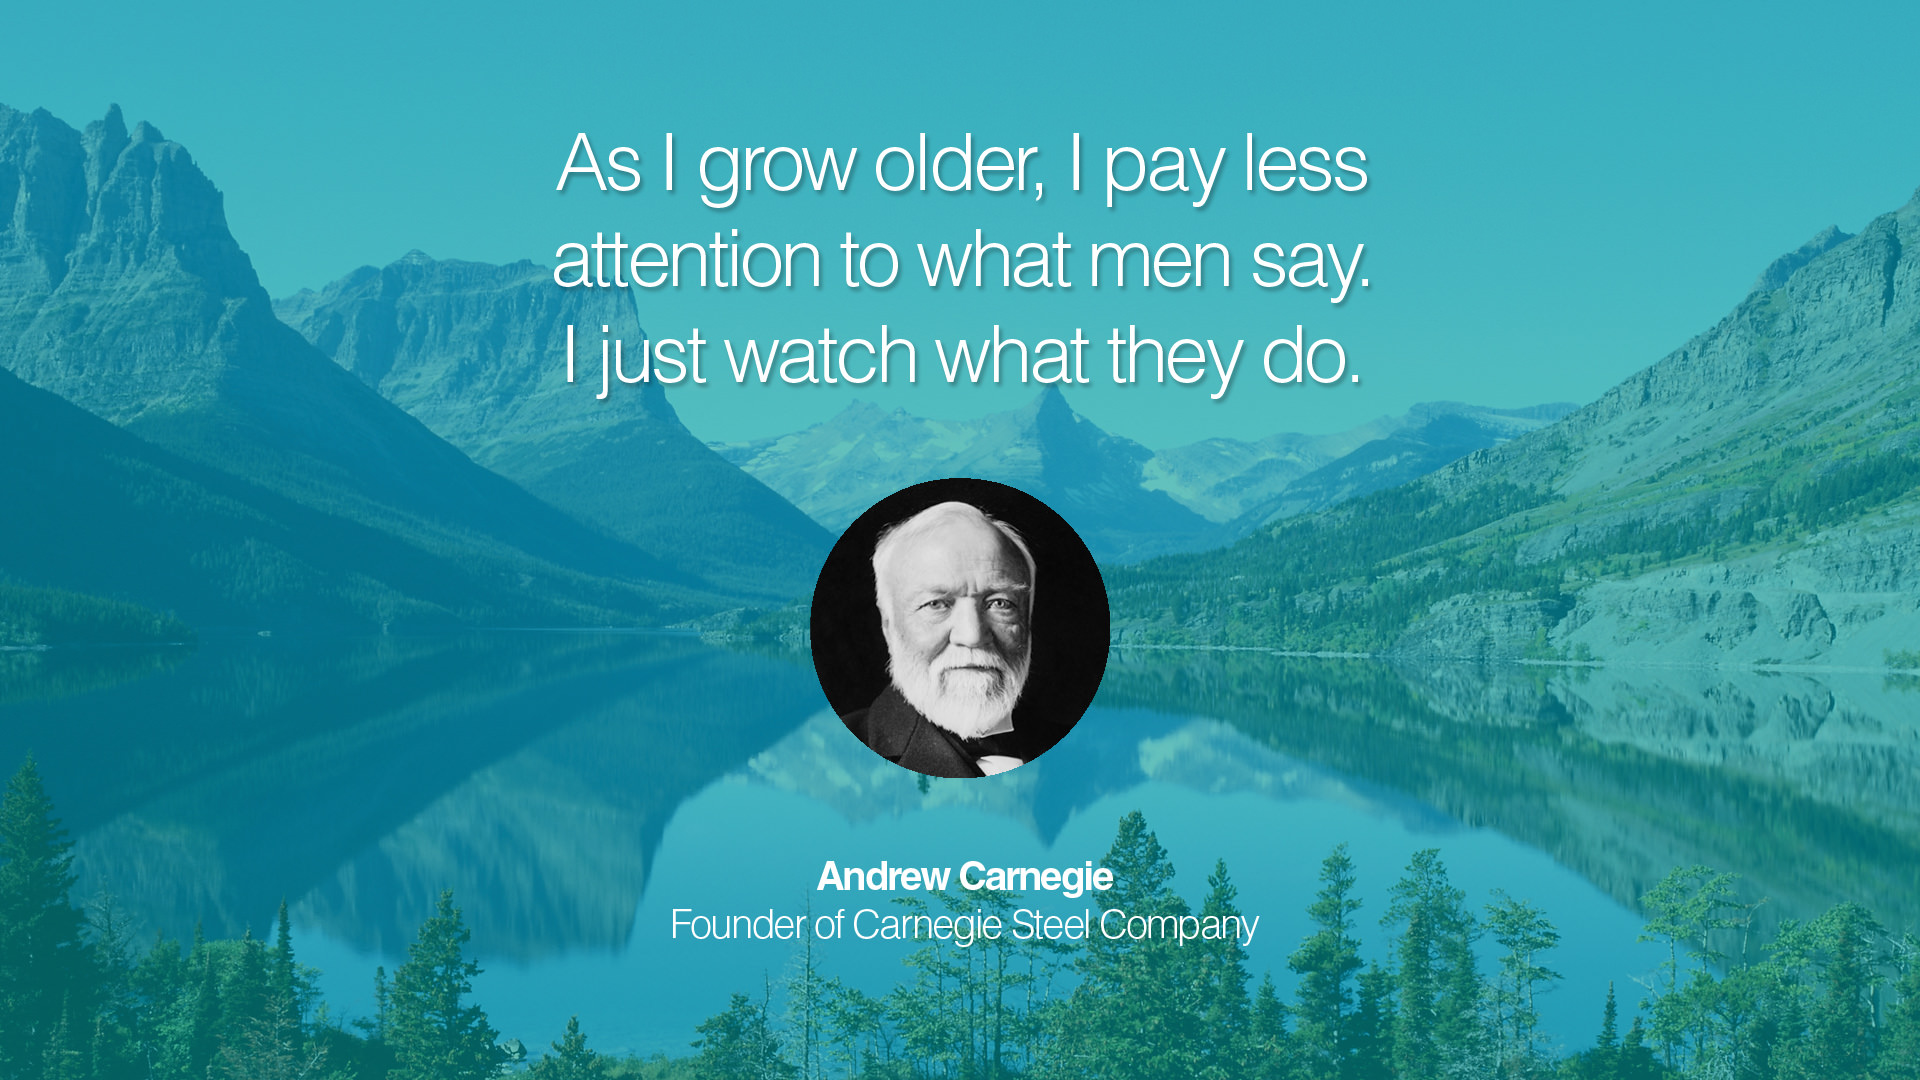 the life and business success of andrew carnegie In the early 1870s, he entered the steel business, and over the next two decades became a dominant force in the industry  andrew carnegie, whose life became a rags-to-riches story, was born .